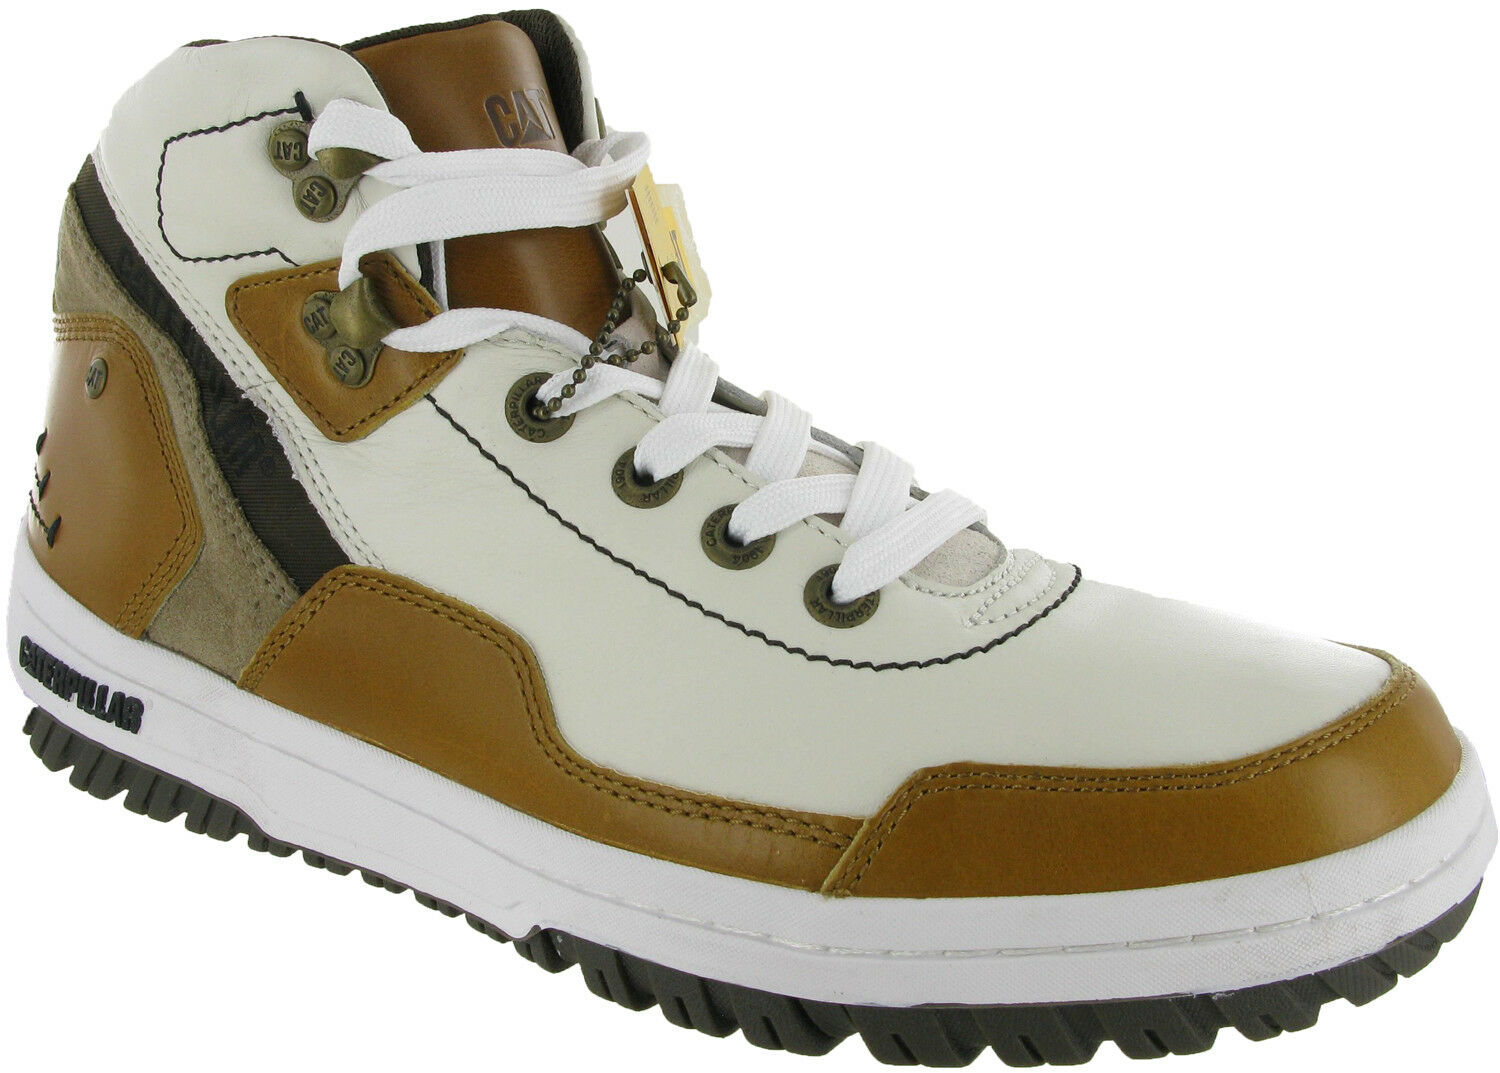 CAT Caterpillar Motivate Hi Lace Up Mens White Casual Hi-Top Boots Trainers